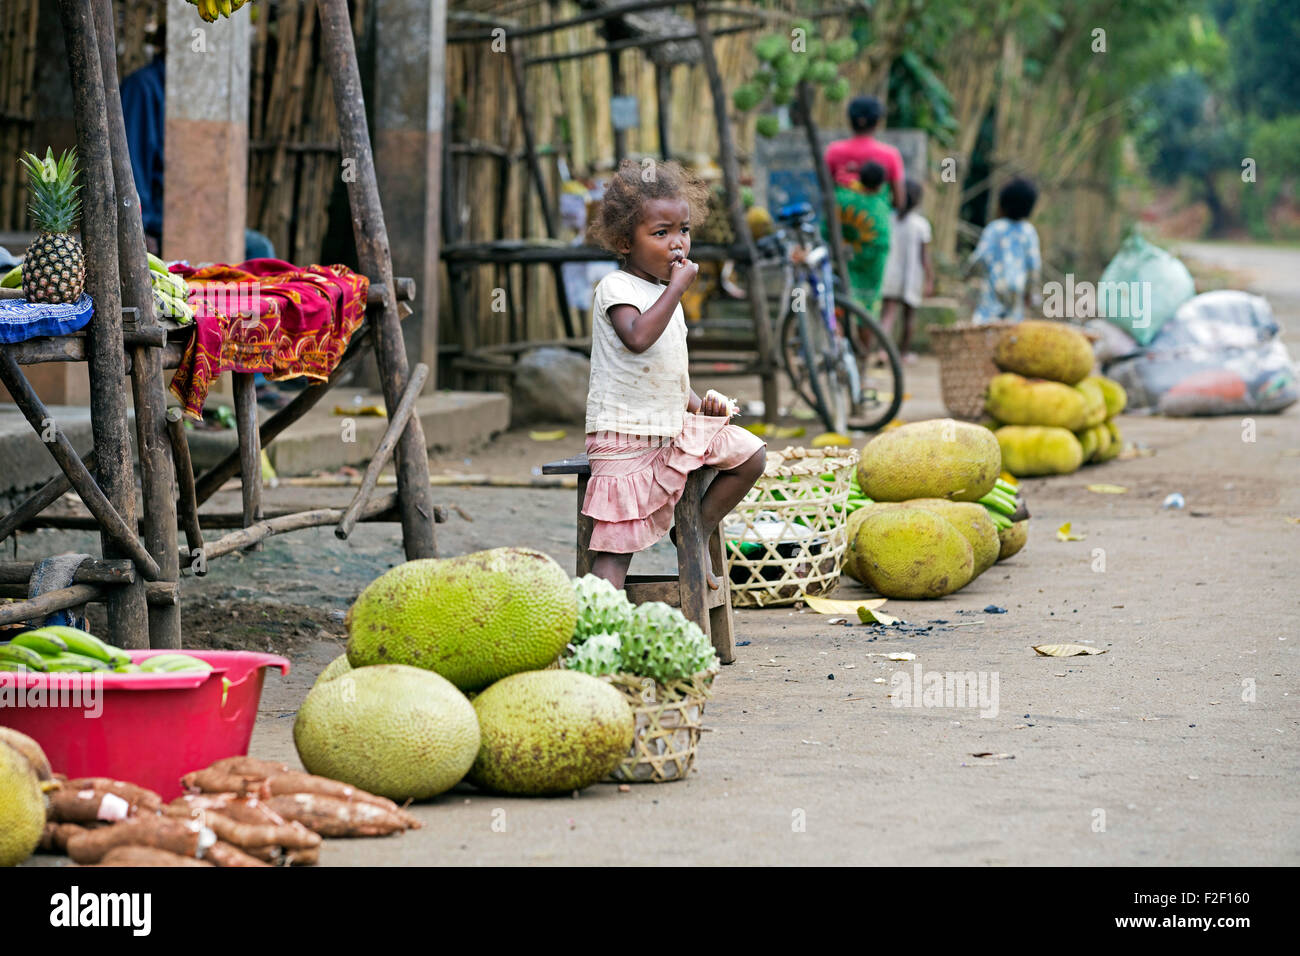 Malagasy girl at roadside market stall selling durian, jackfruit , vegetables in rural village, Vatovavy-Fitovinany, - Stock Image